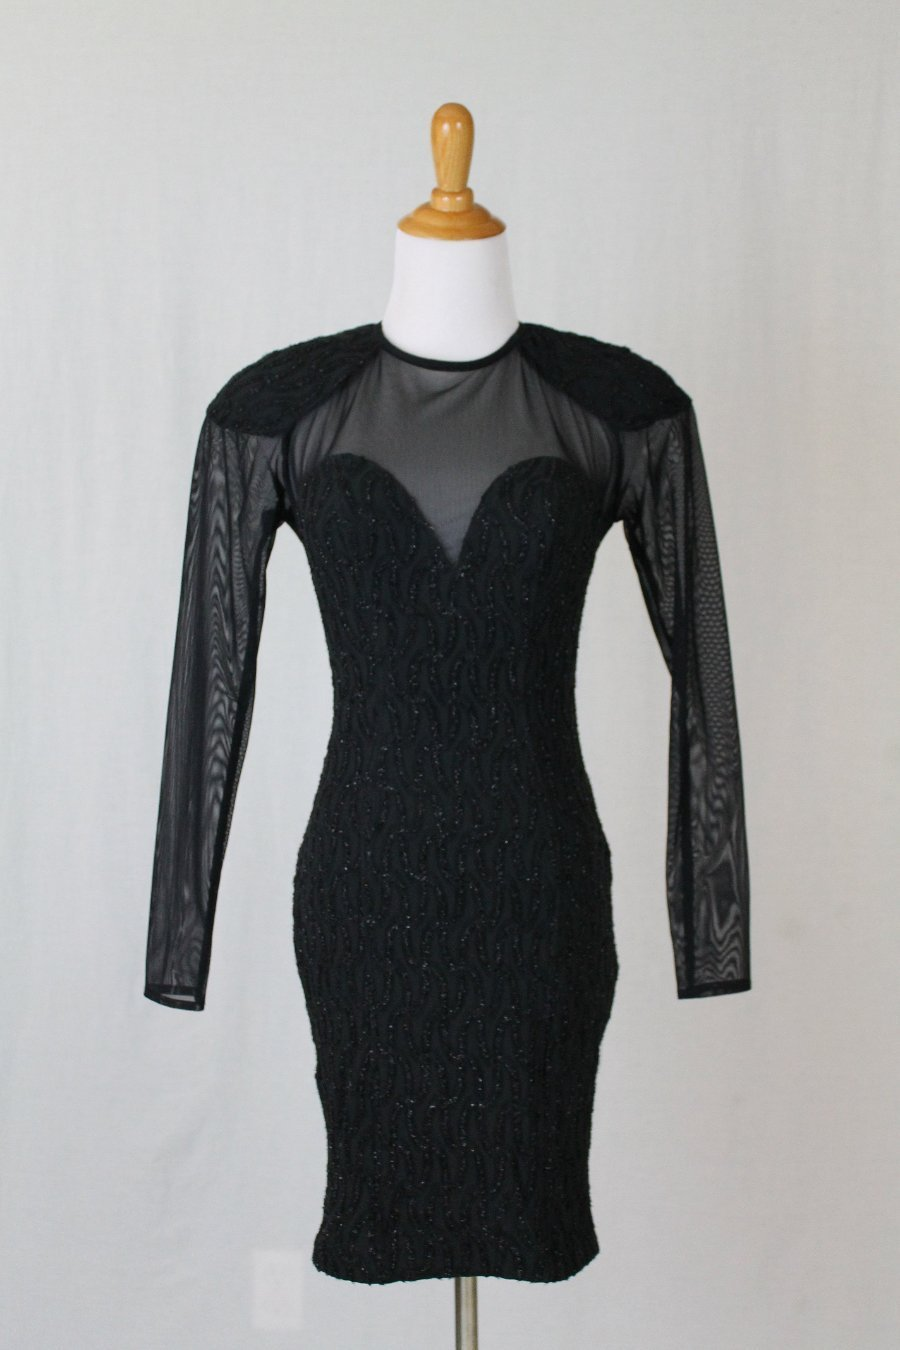 Vintage Susan Roselli for VIJACK Black Lace Bodycon Illusion Long Sleeve Dress 4